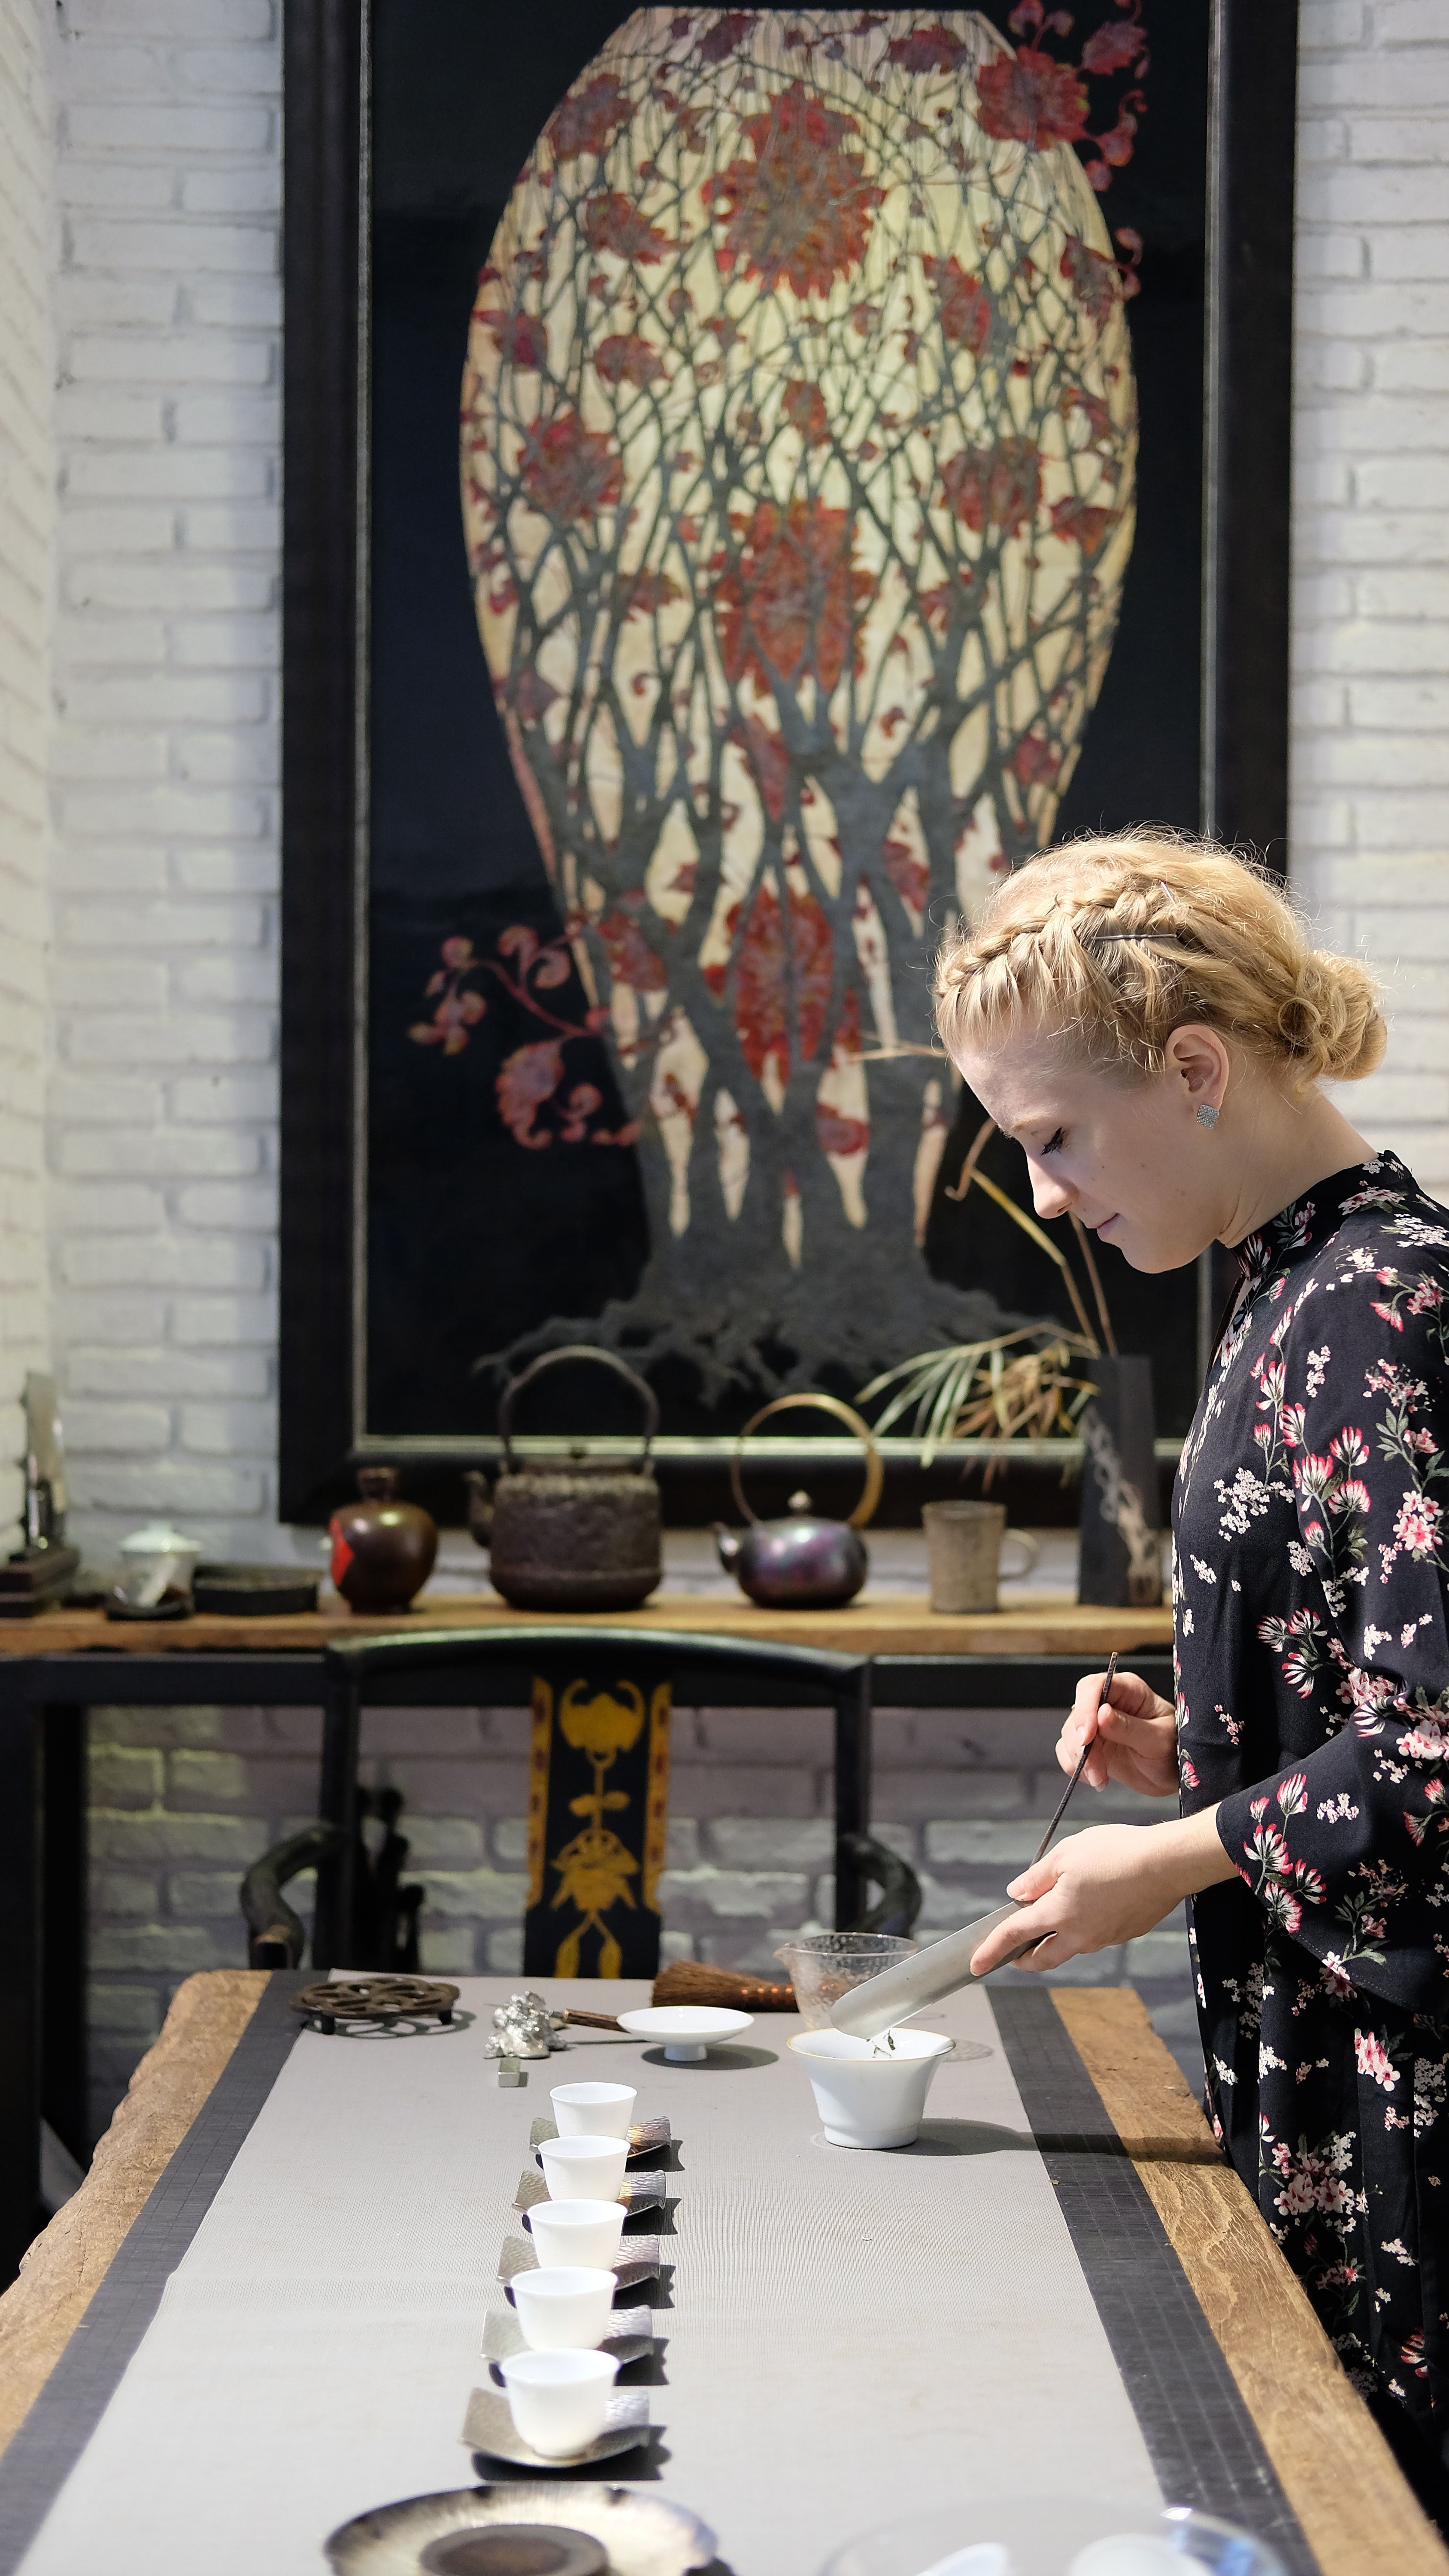 woman pouring into cup in table